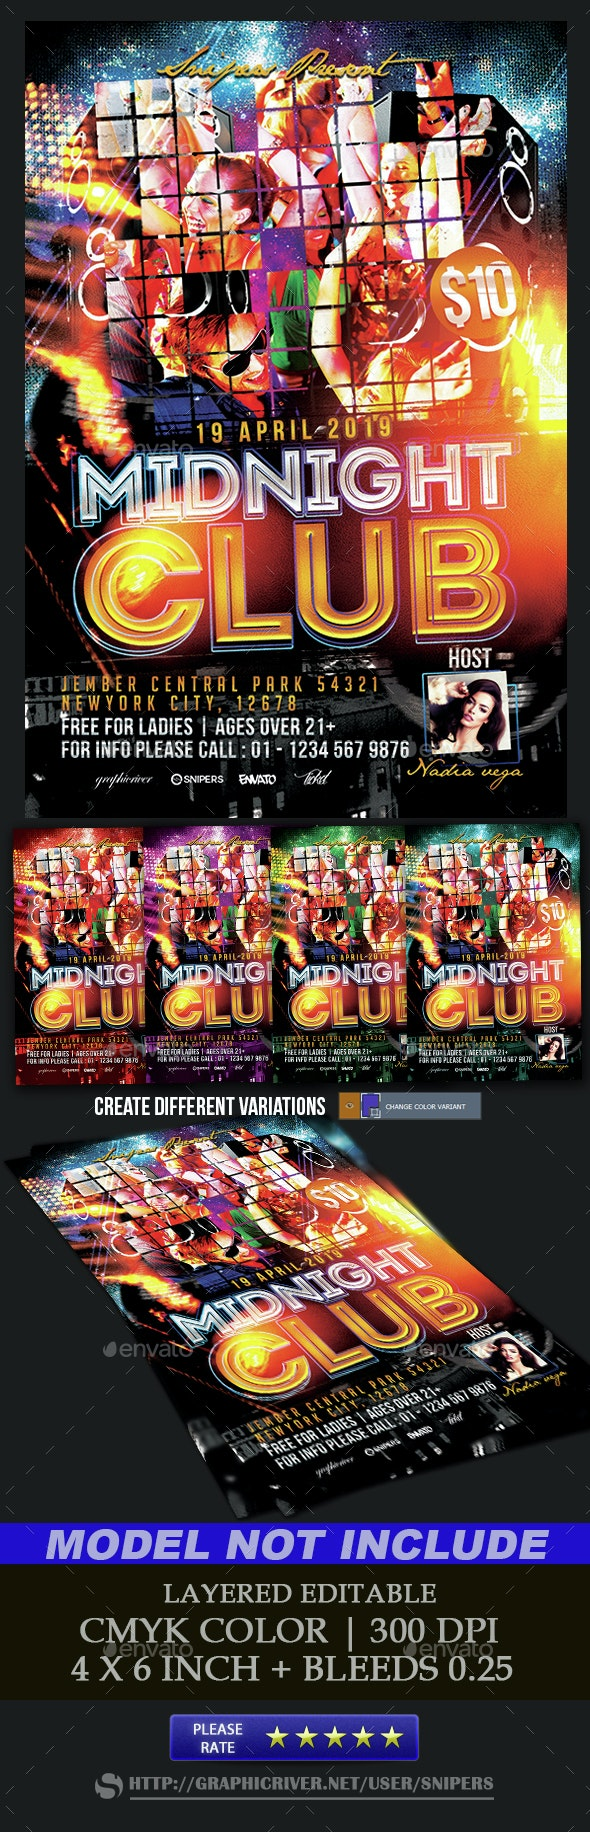 Midnight Club - Events Flyers